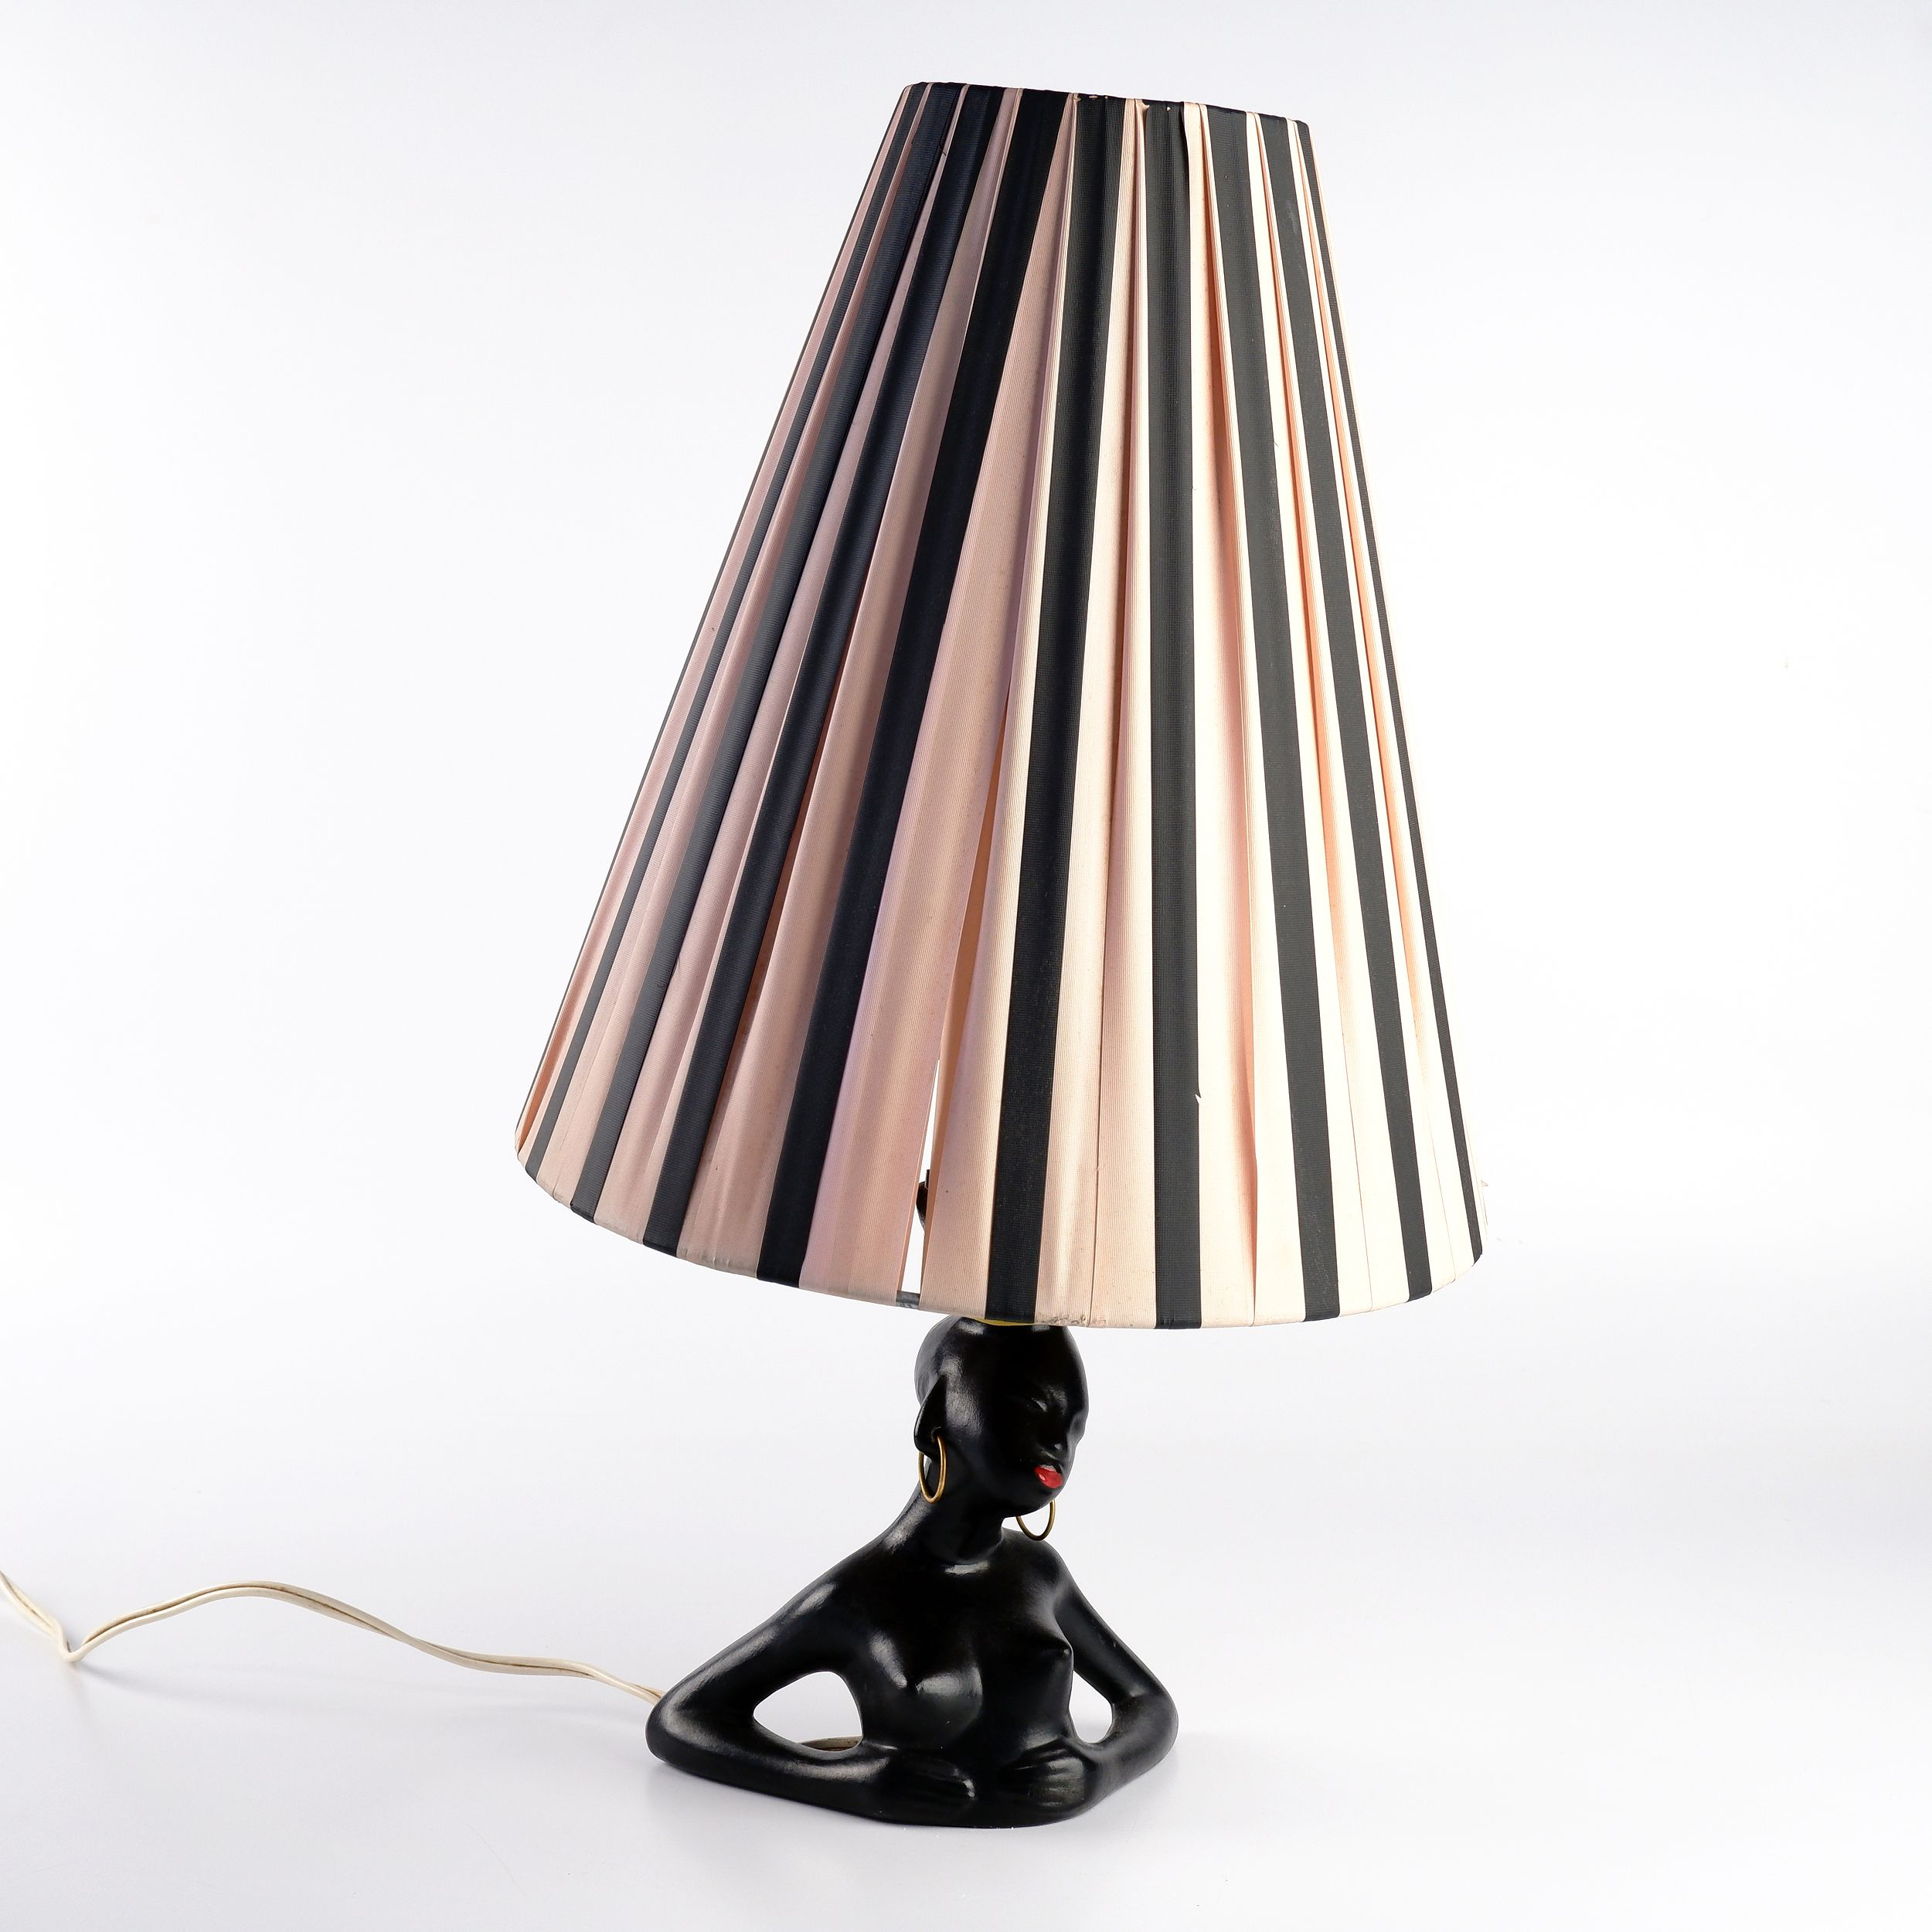 'Barsony Figural Table Lamp with Hoop Earrings and Ribbon Shade'